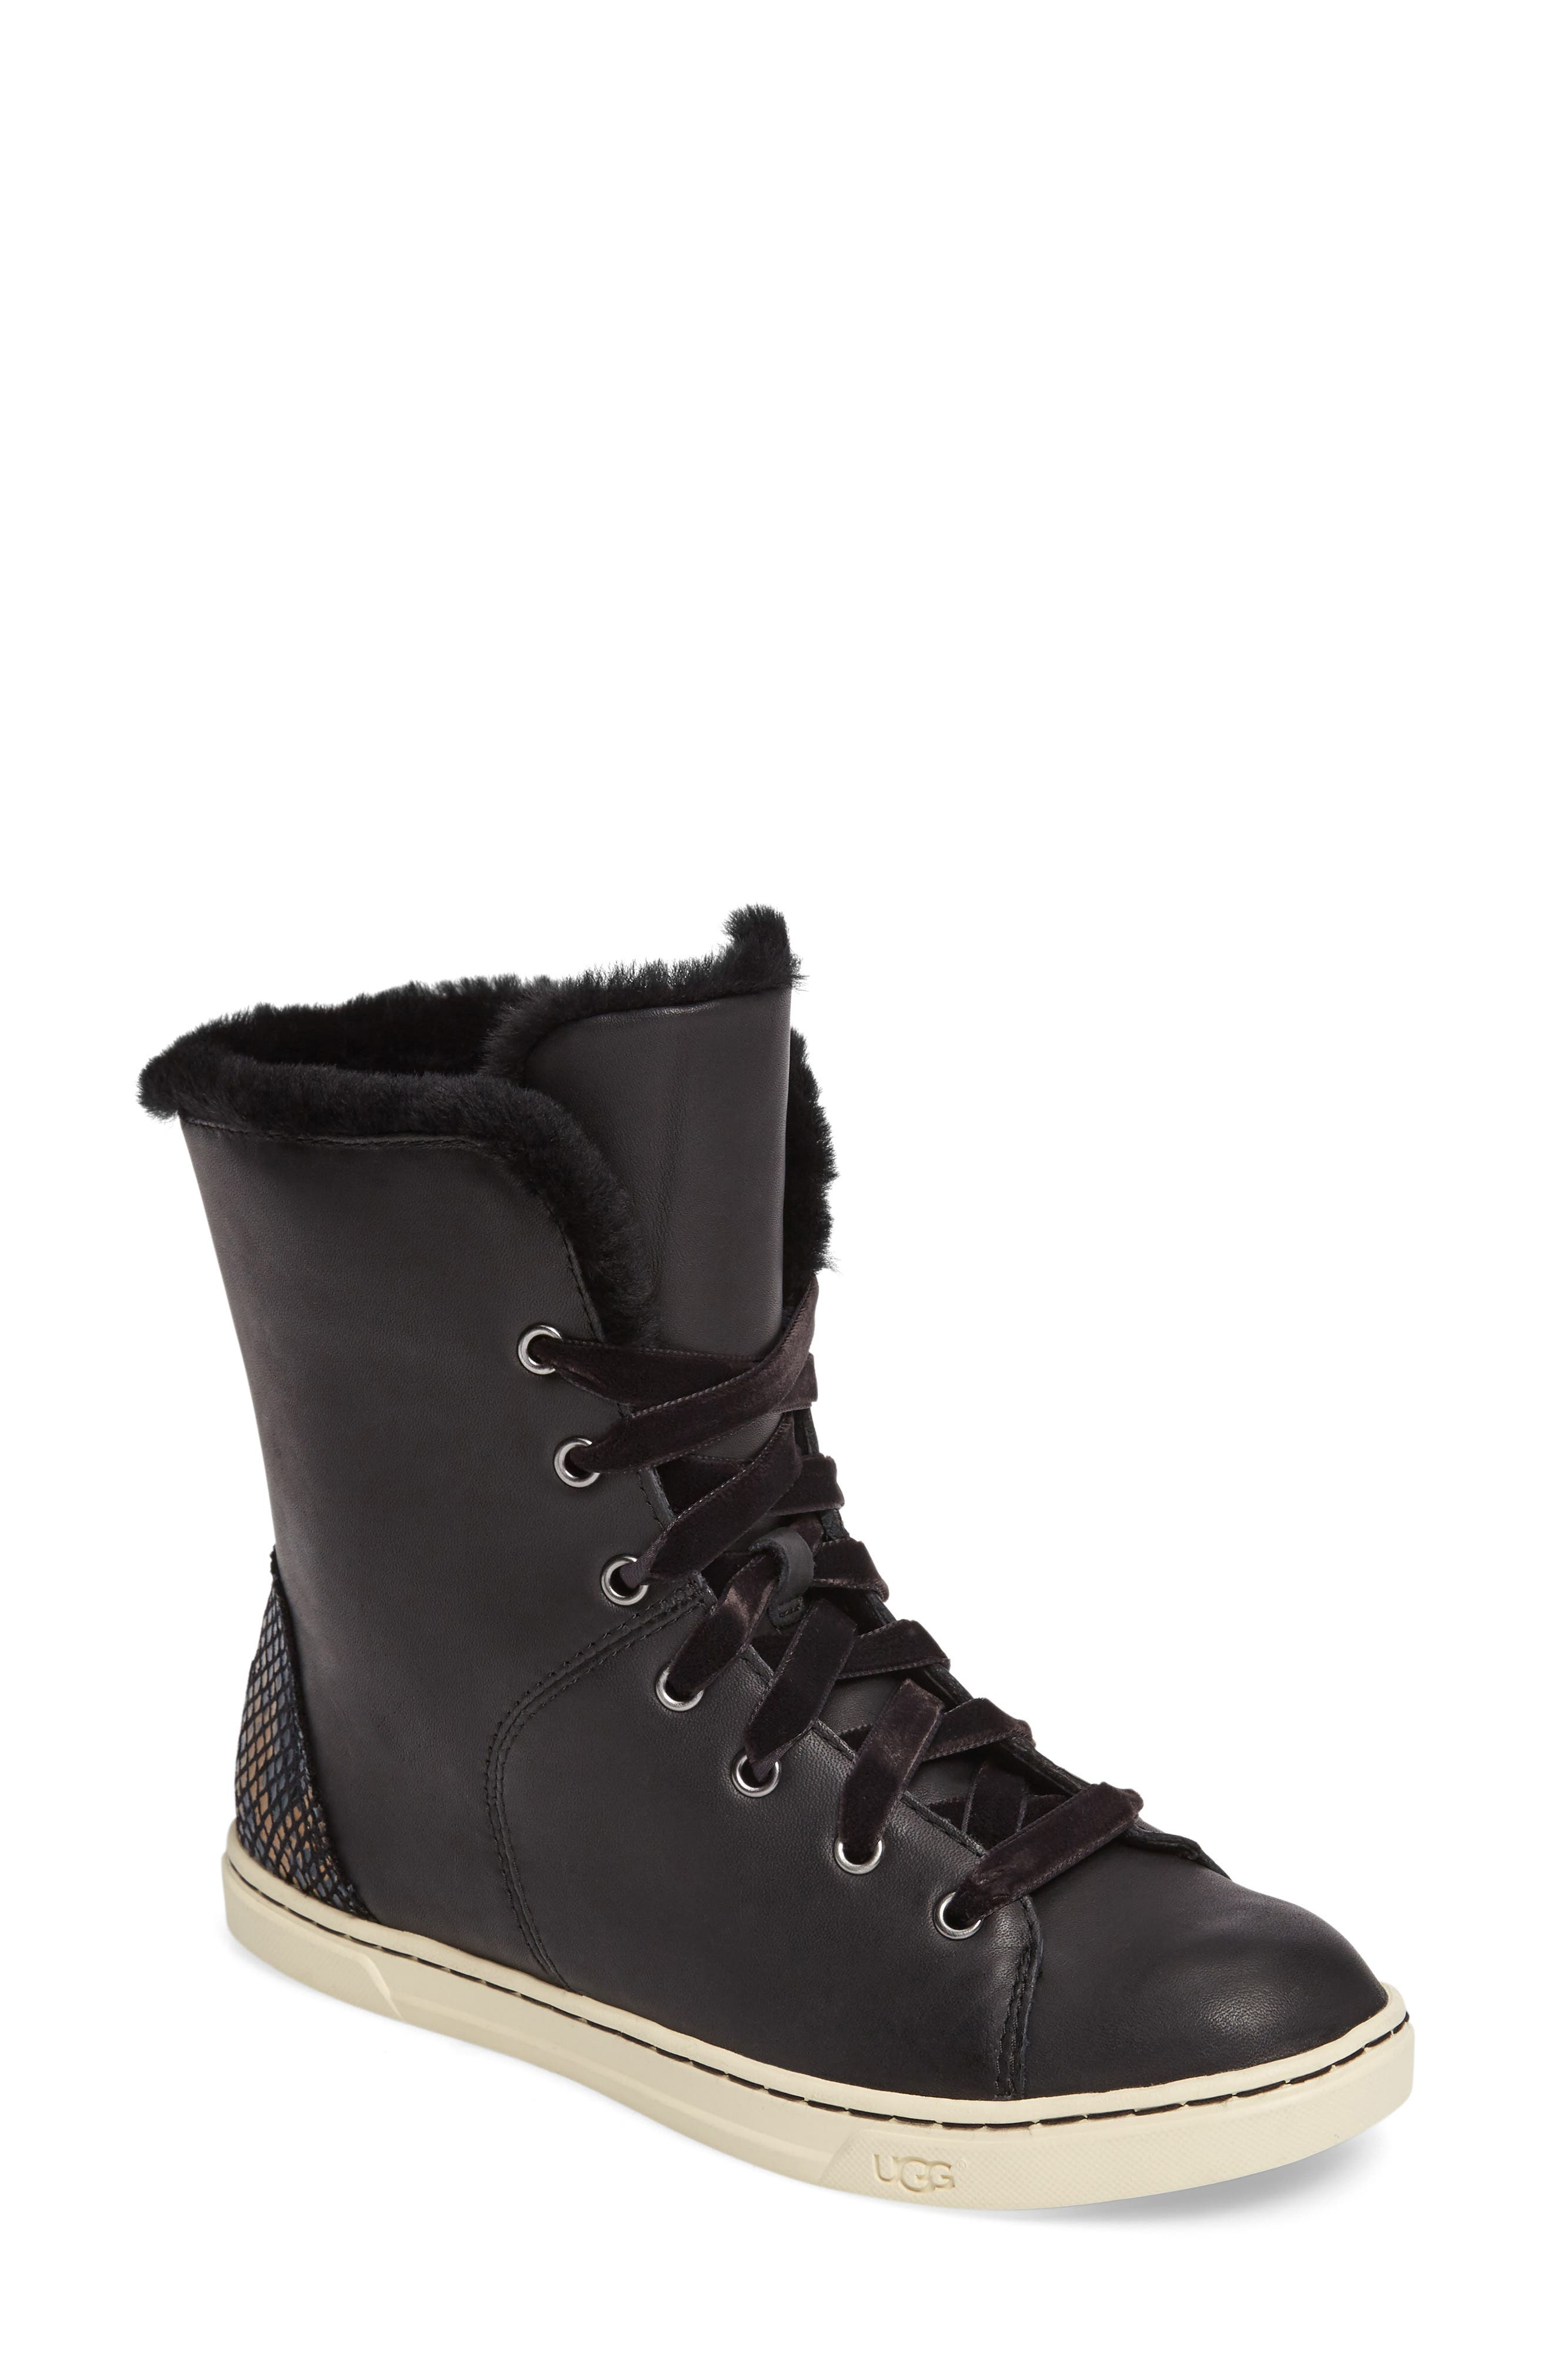 Alternate Image 1 Selected - UGG® Croft Exotic Velvet Sneaker